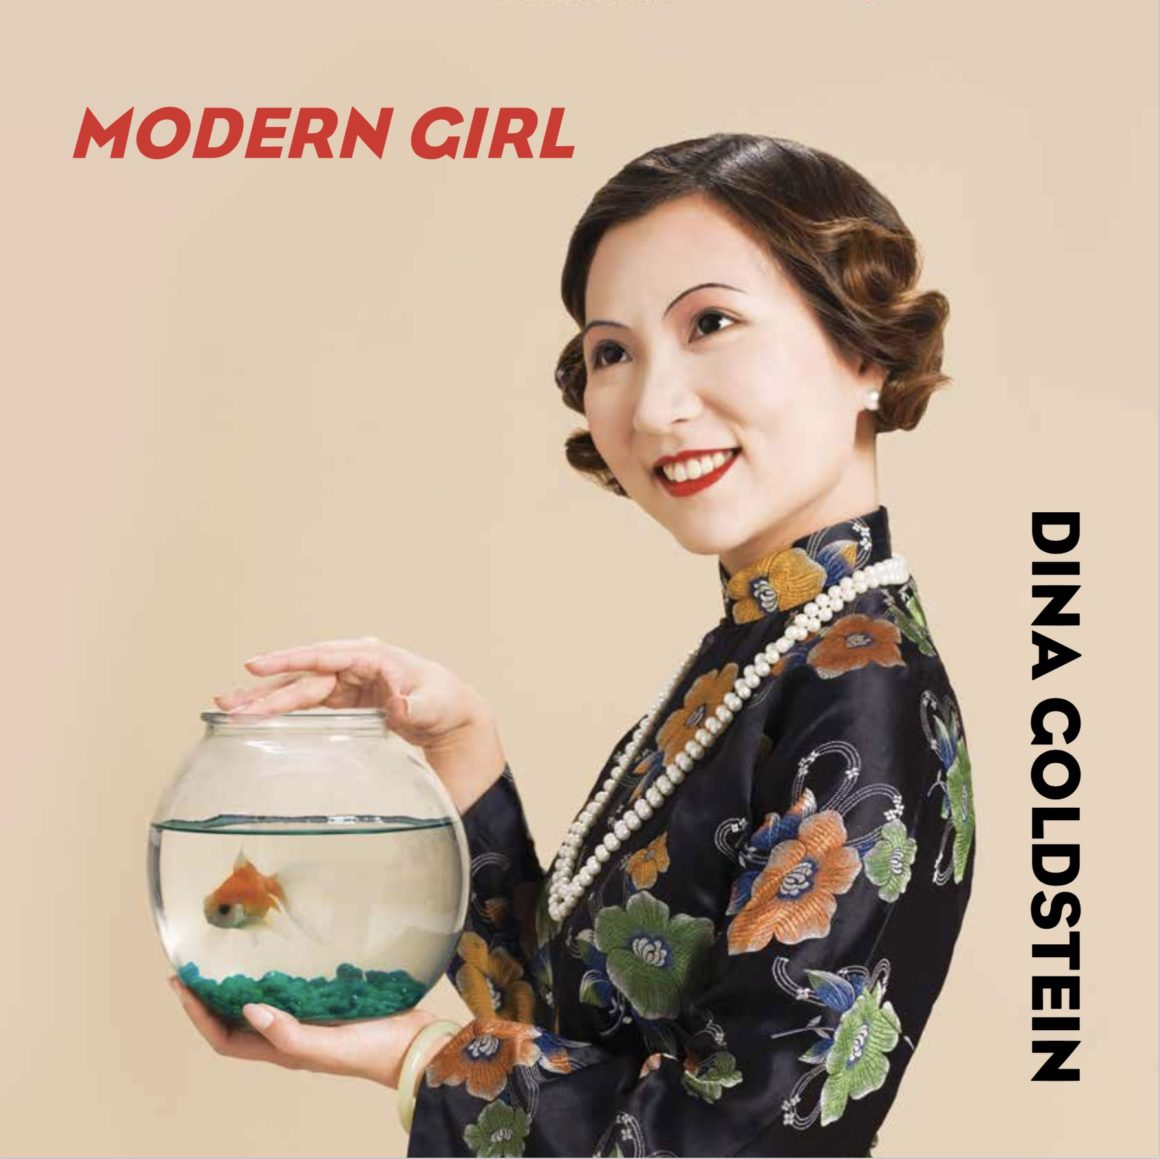 Catalogue Dina Goldstein Modern Girl Masterpiece gallery 2020